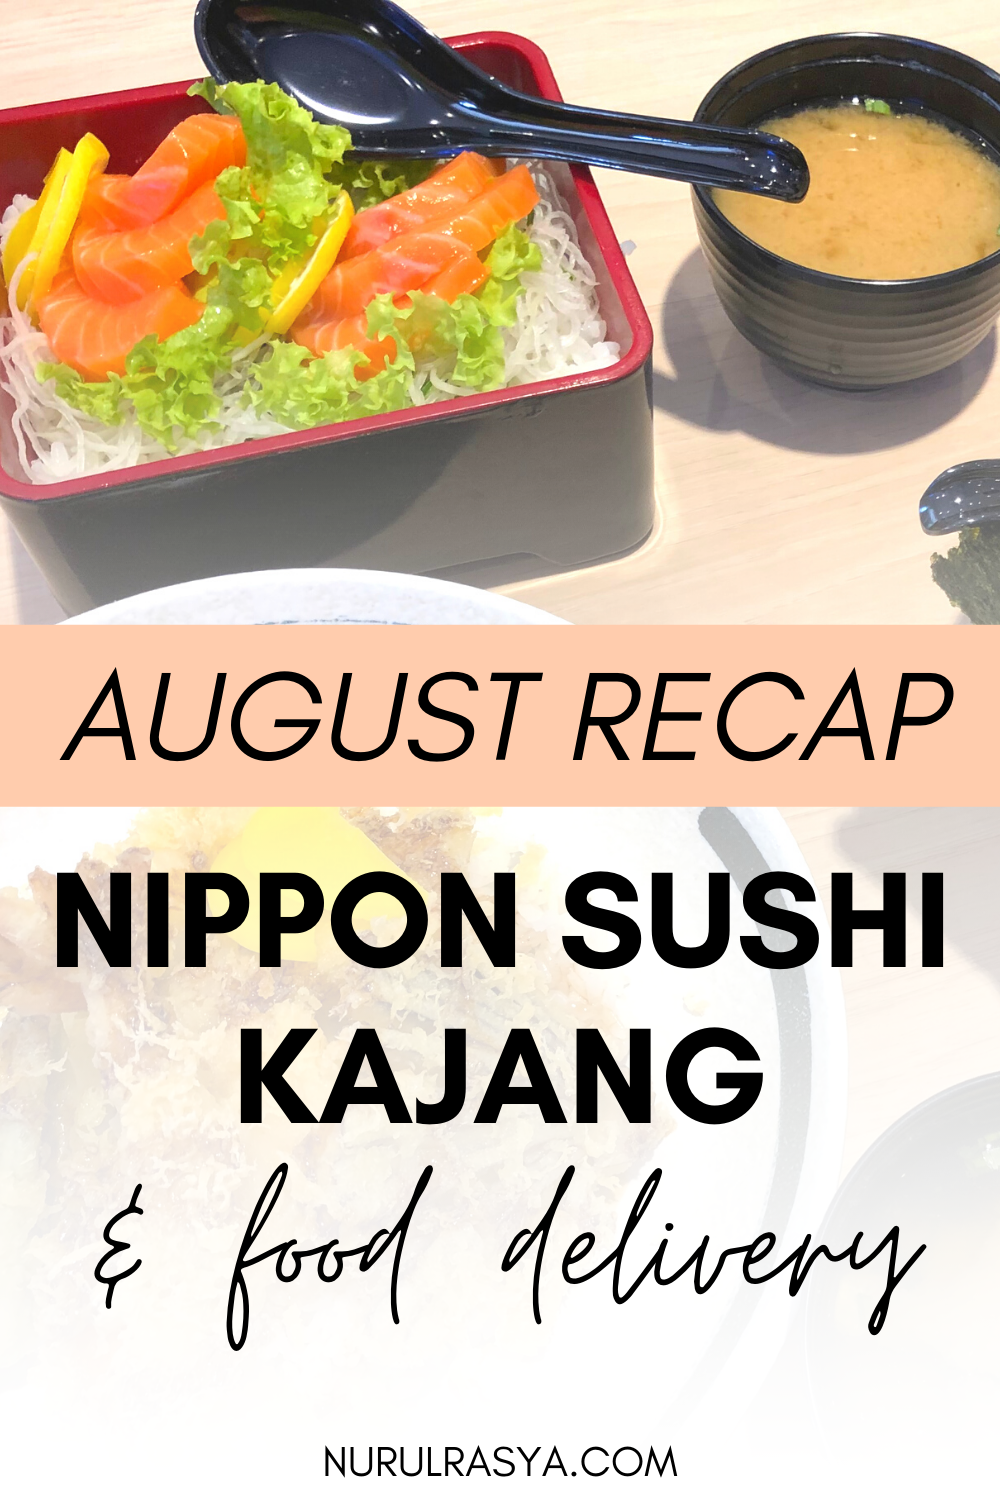 August Recap feat Nippon Sushi Kajang, FoodPanda and GrabFood delivery